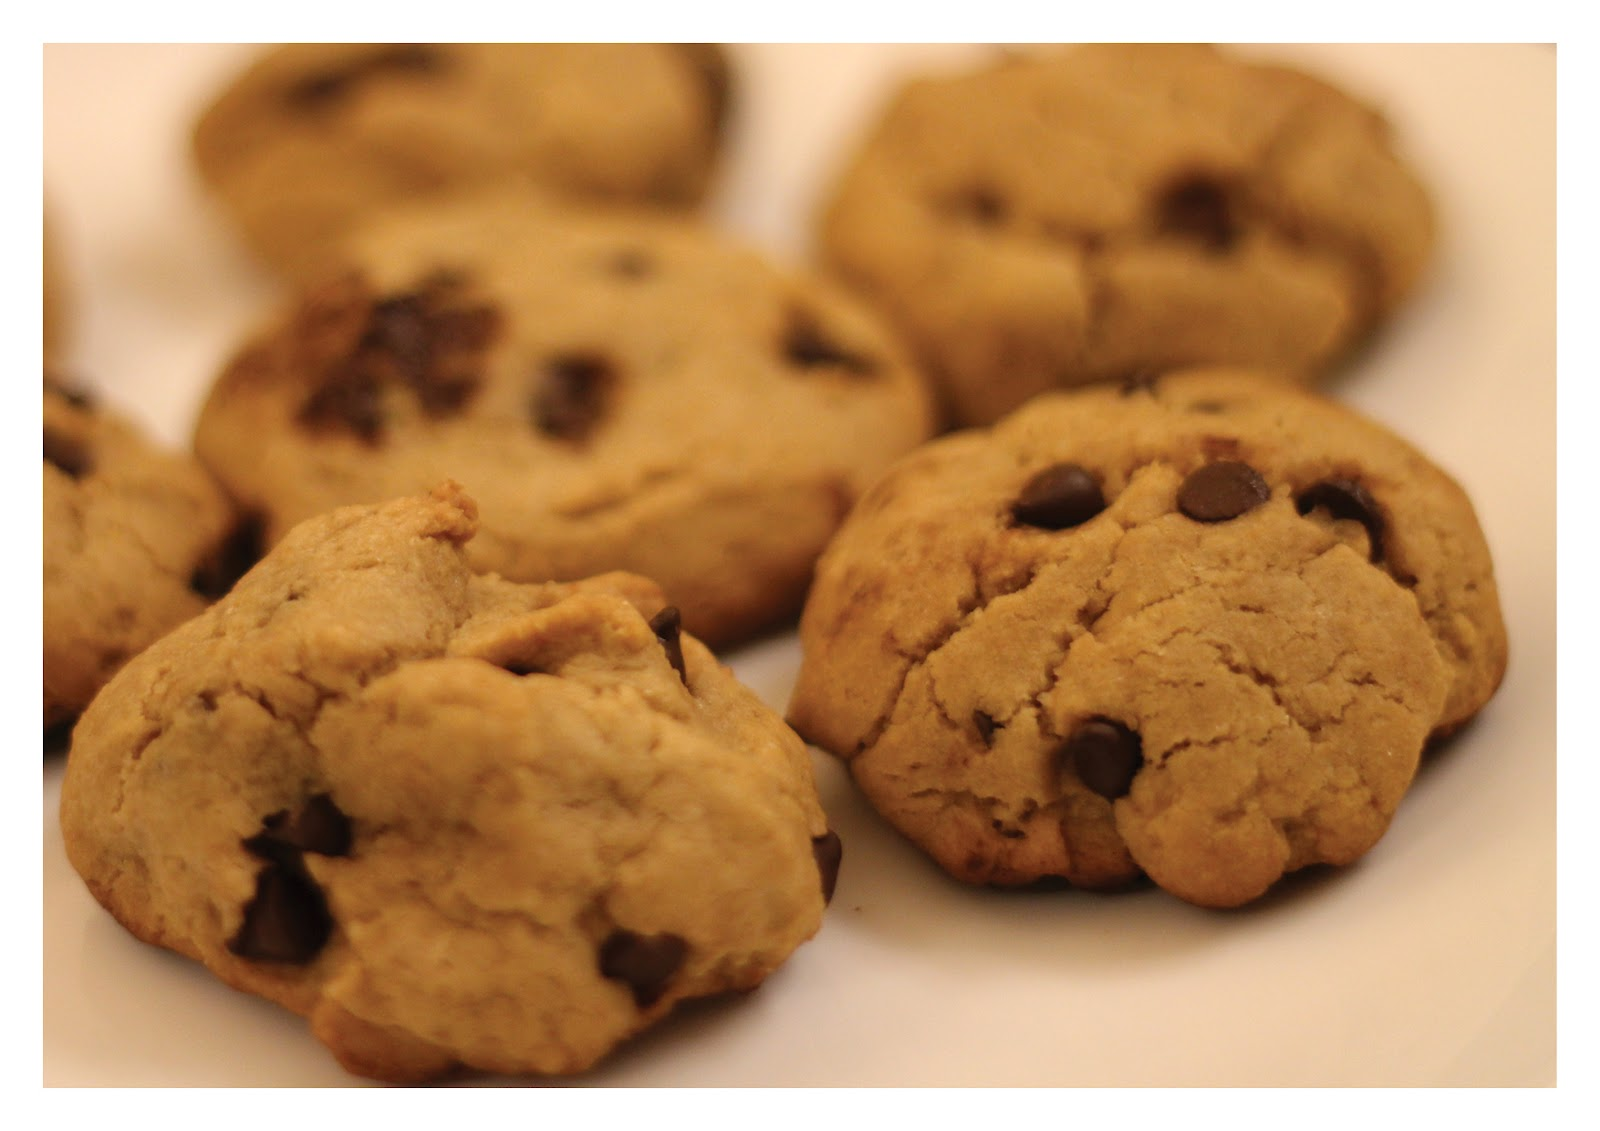 Chocolate Chip Cookies No Baking Soda No Brown Sugar